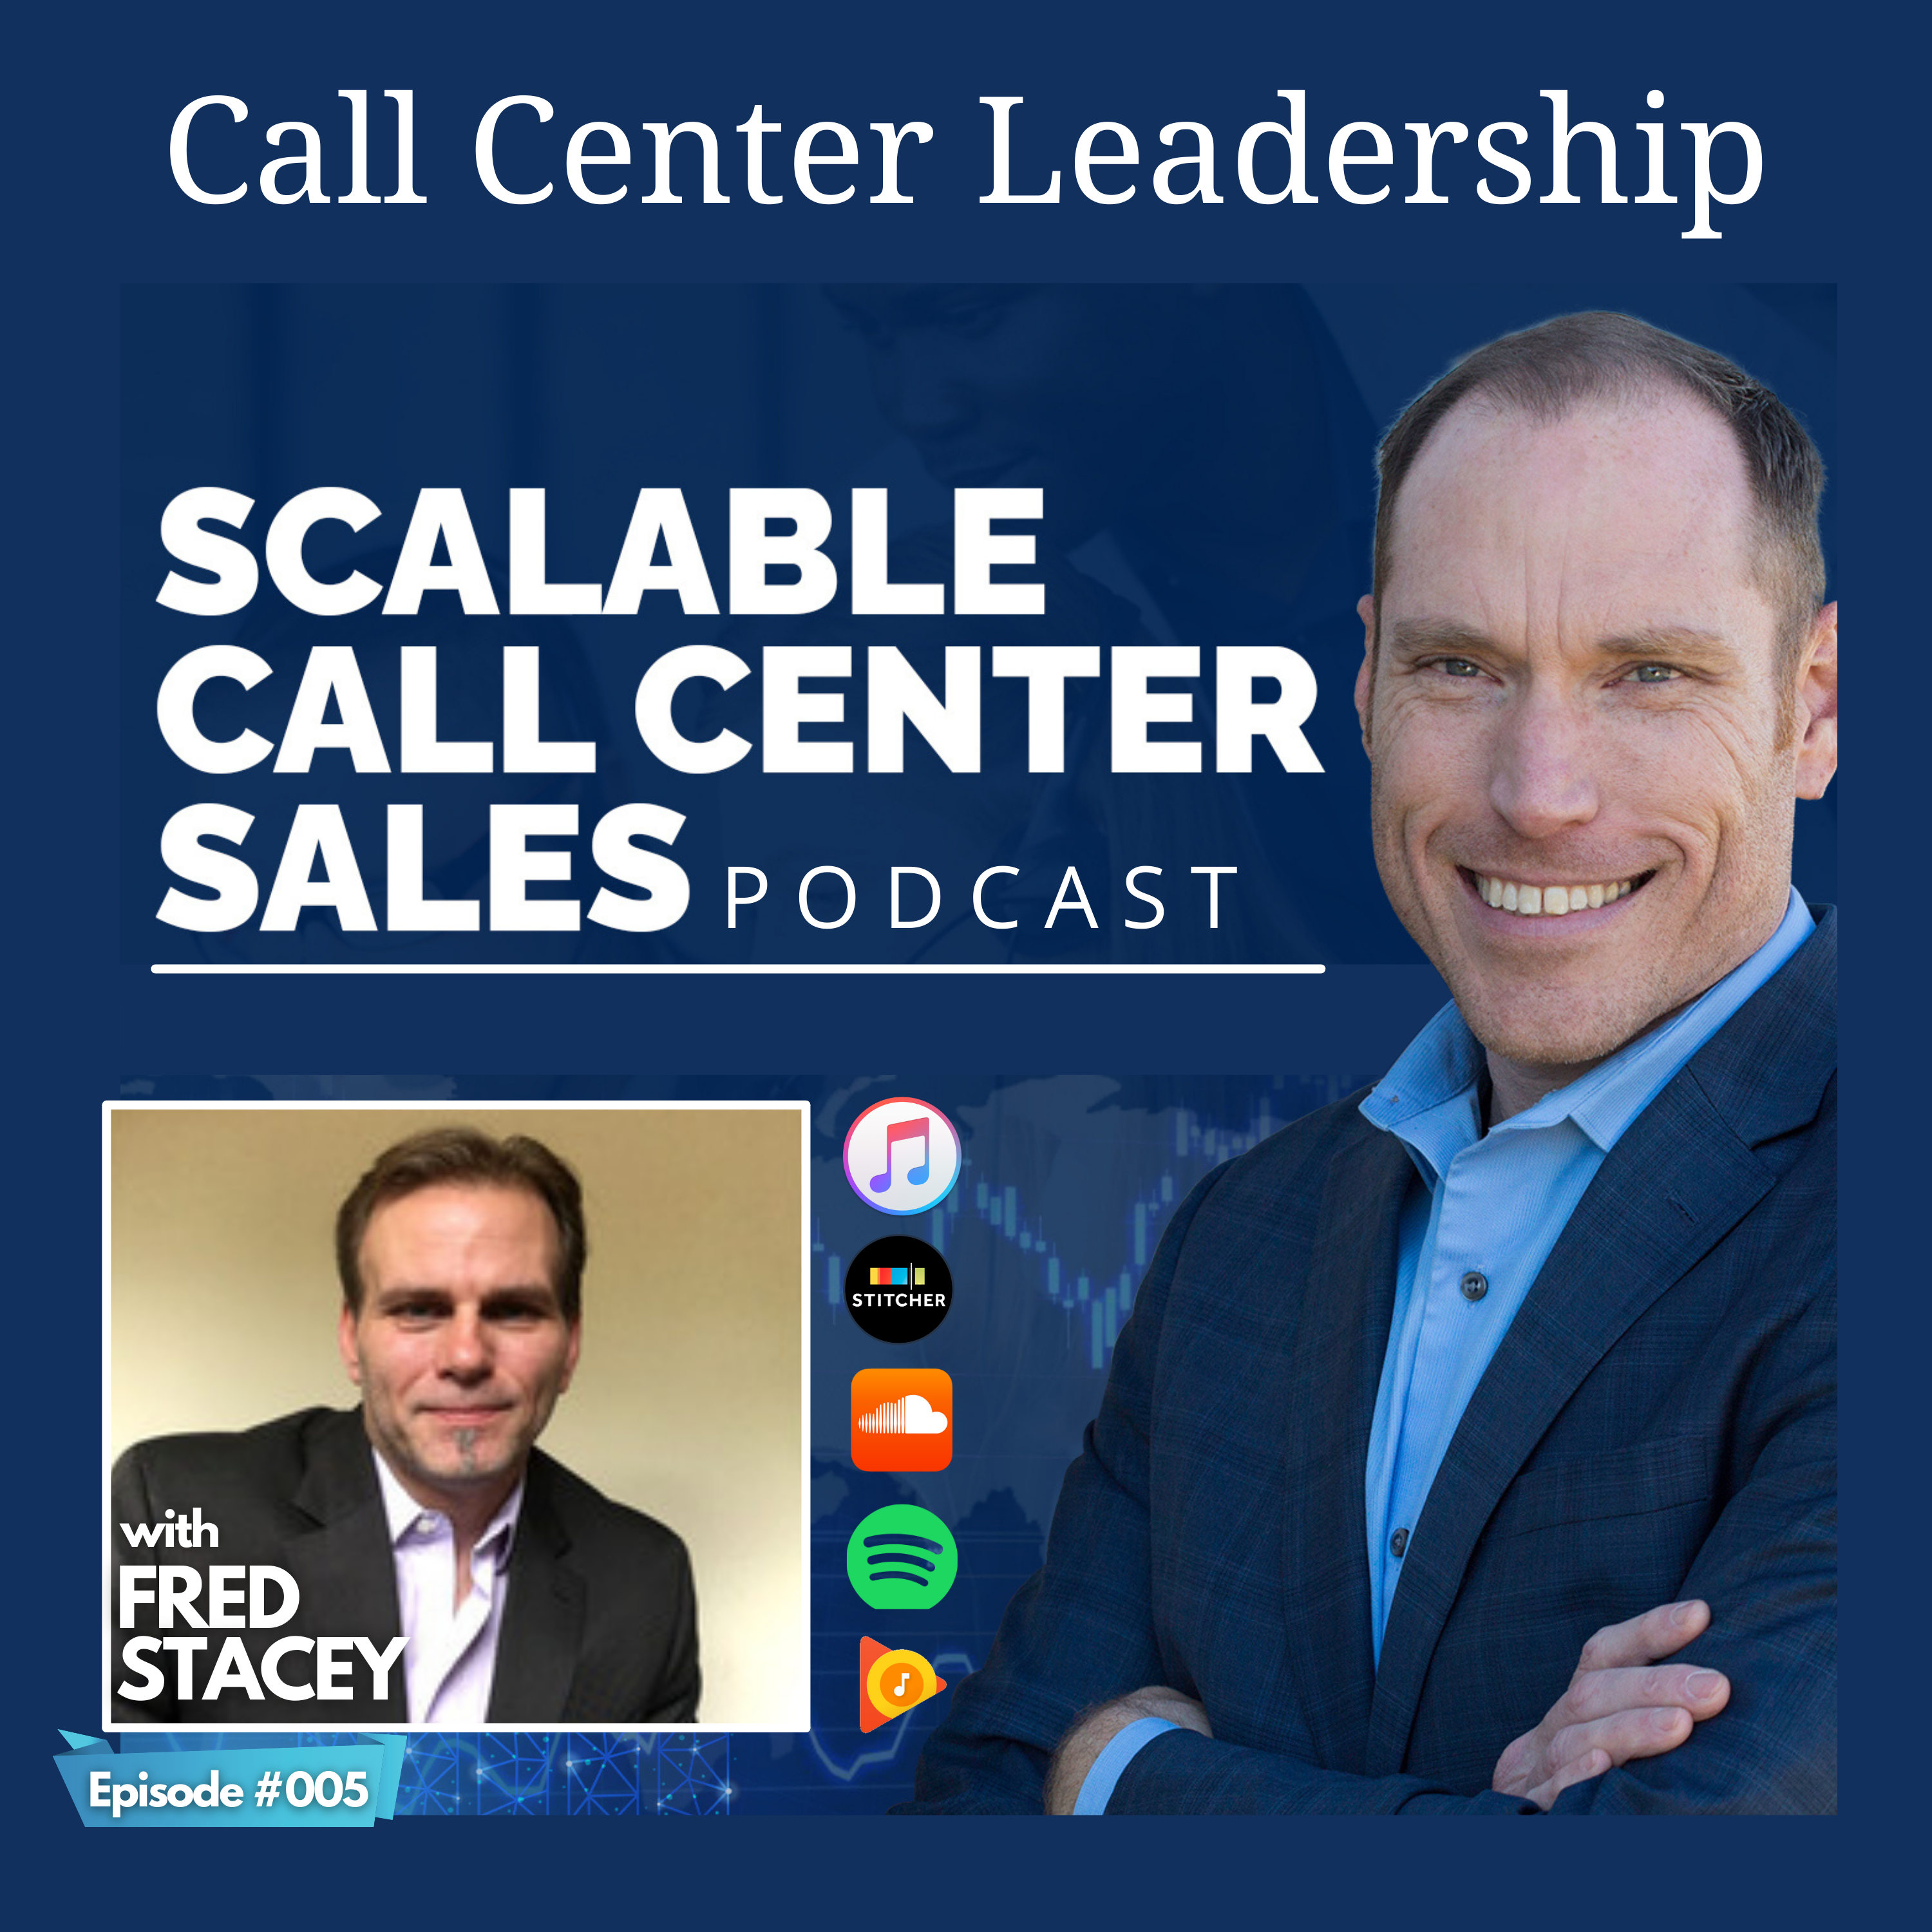 You are currently viewing [005] Call Center Leadership, with Fred Stacey